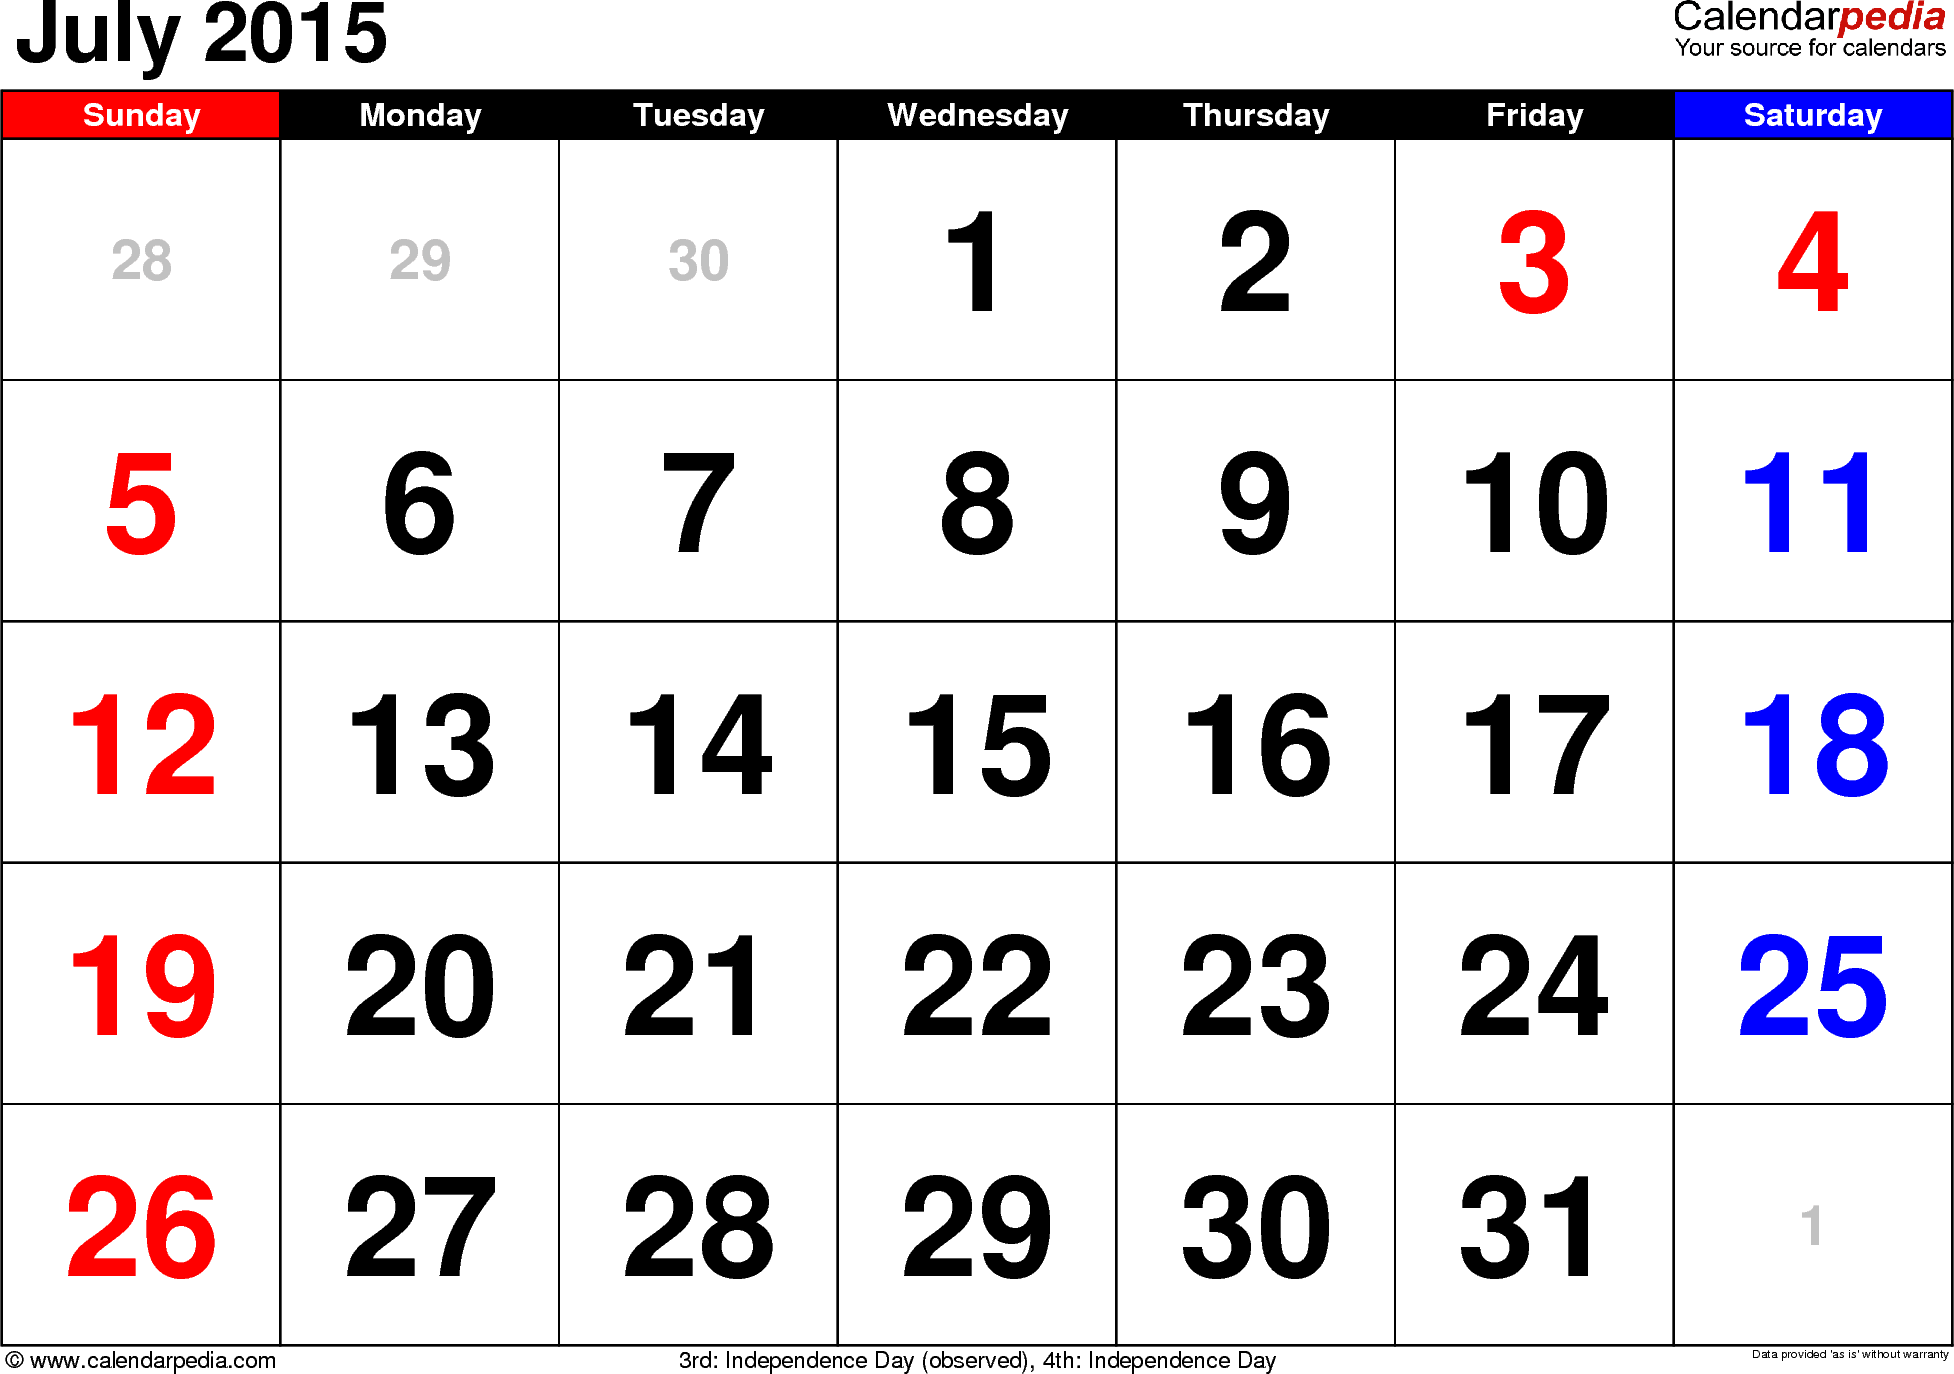 July 2015 calendar, landscape orientation, large numerals, available as printable templates for Word, Excel and PDF